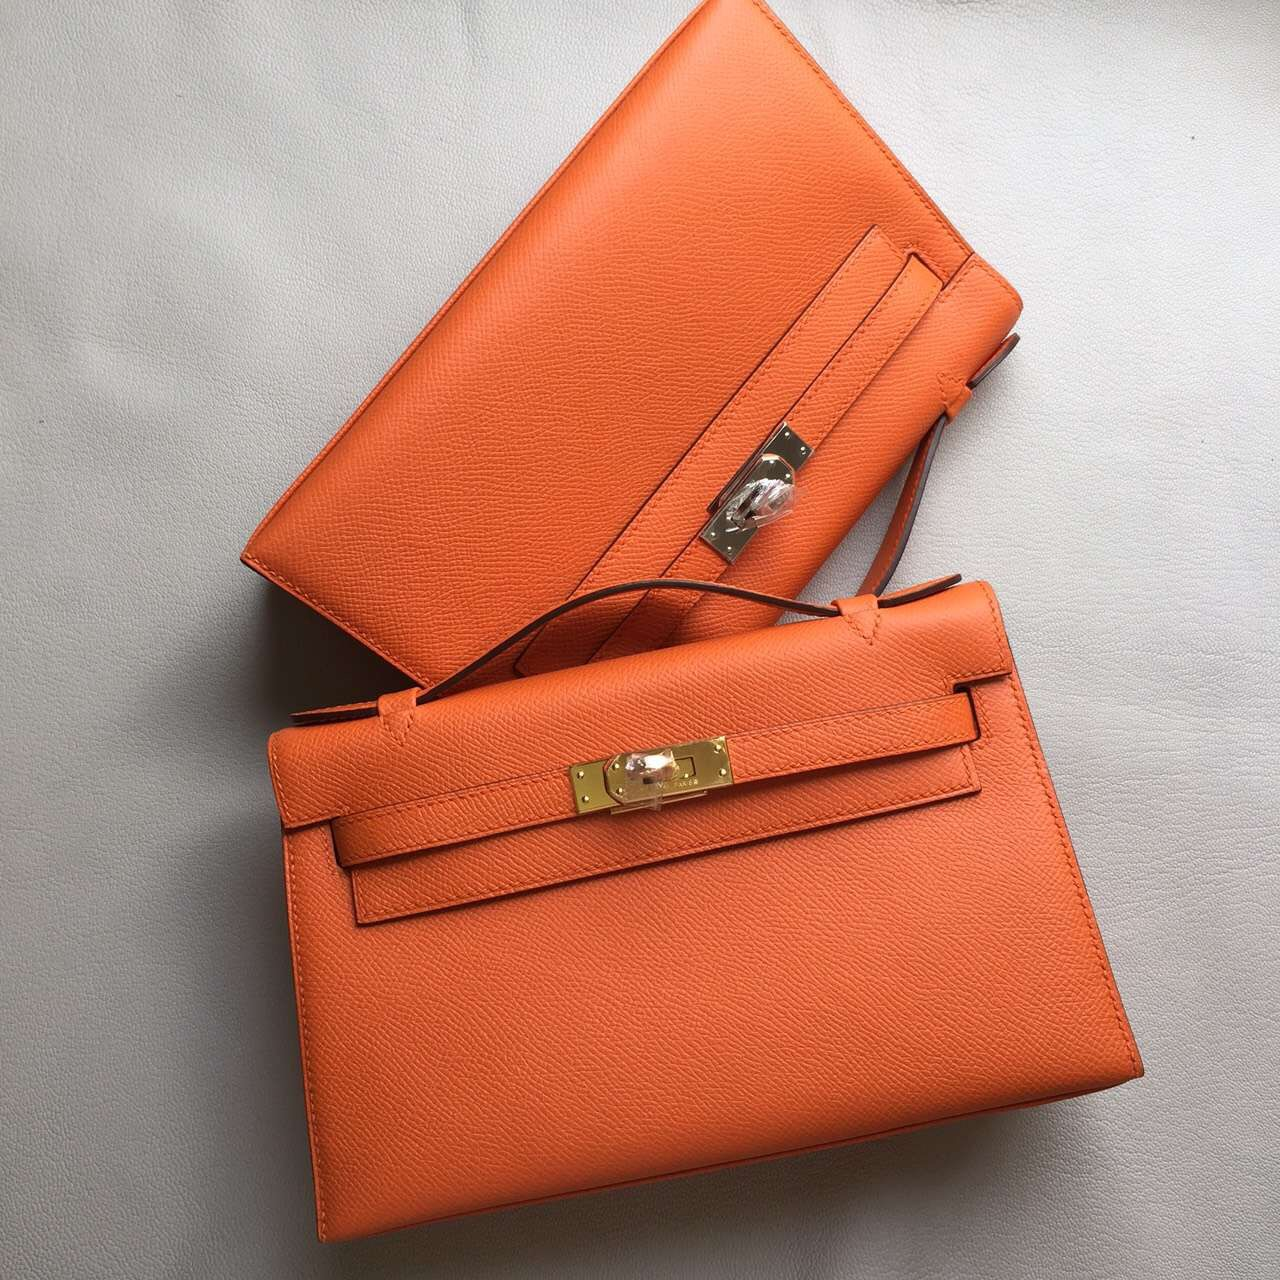 Discount Hermes Epsom Leather Minikelly Clutch Bag 22cm in  93 Orange